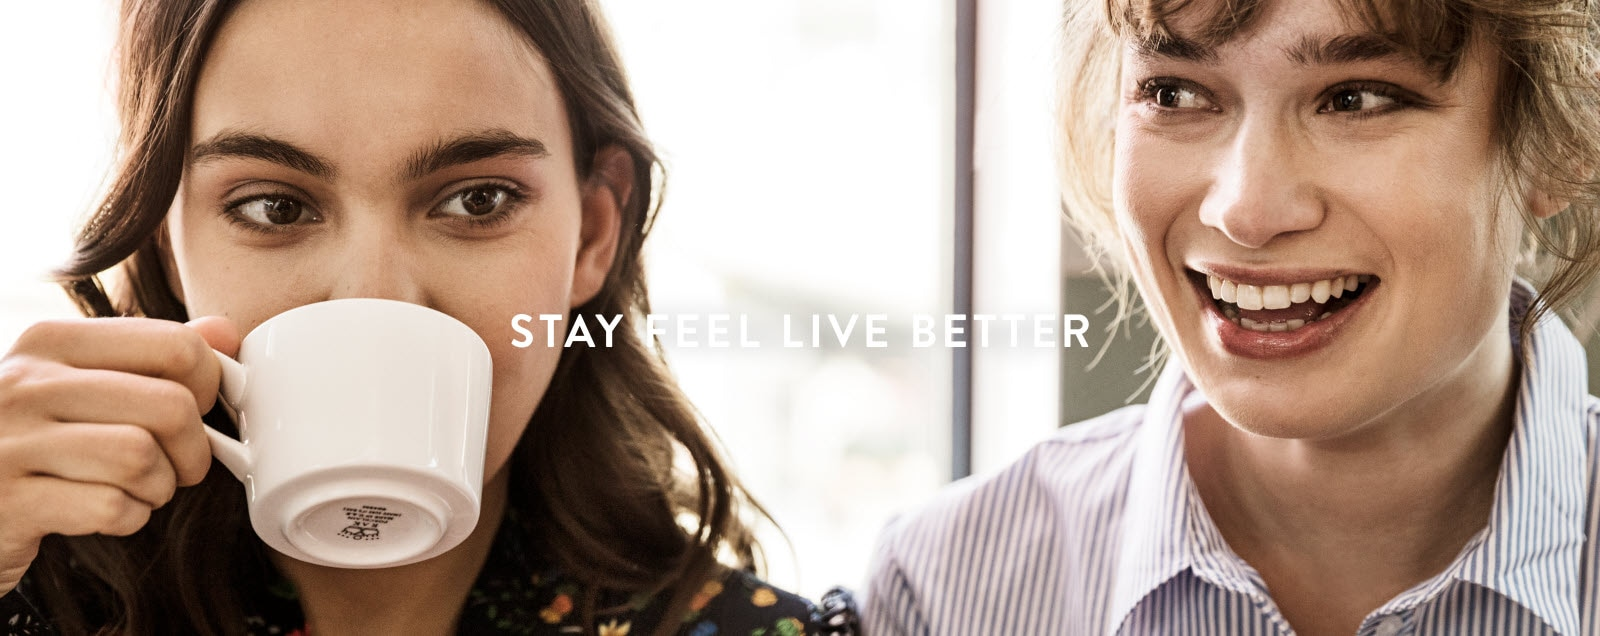 Stay feel live better at Scandic